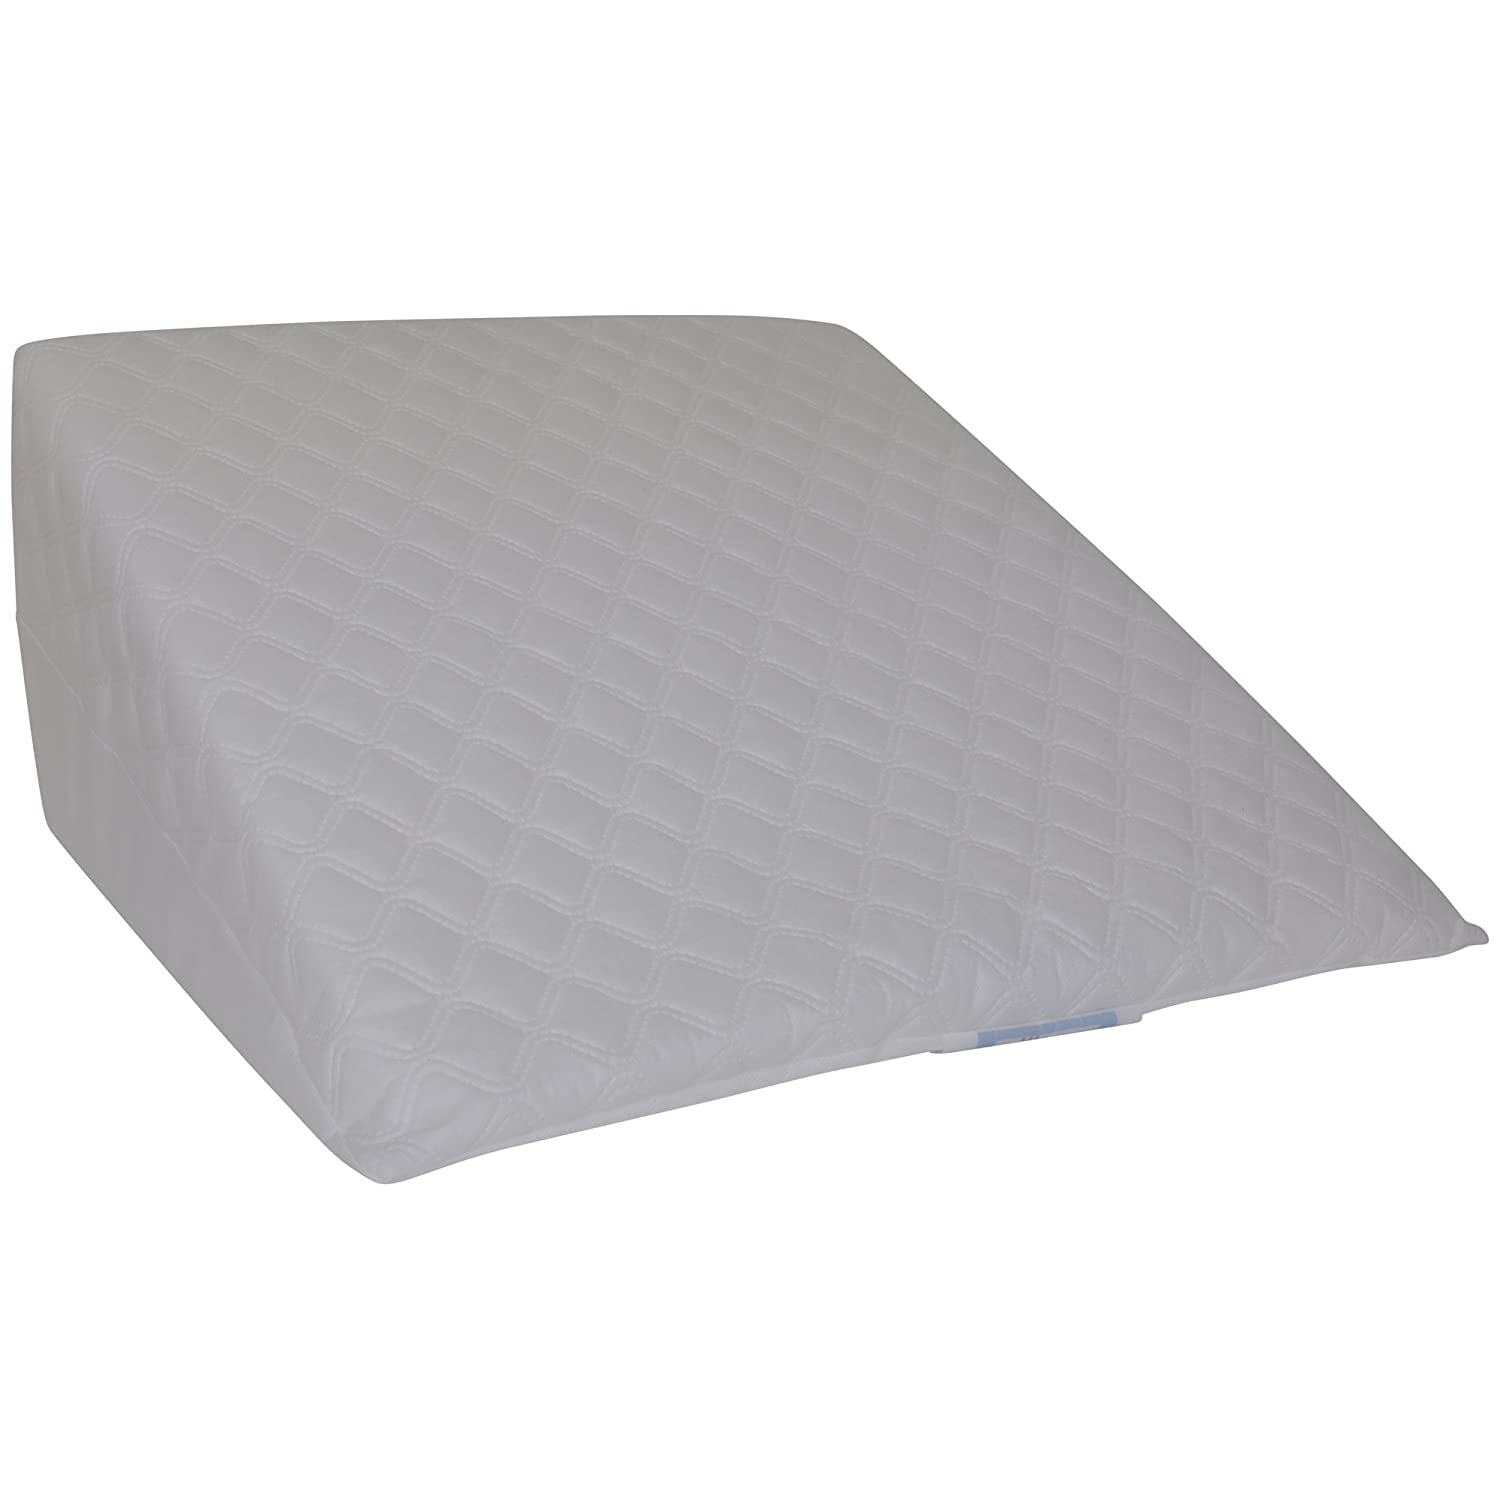 clicktostyle Wedge Foam Pillow Cushion Multi Purpose Comfort Pain Relief Back Support Quality